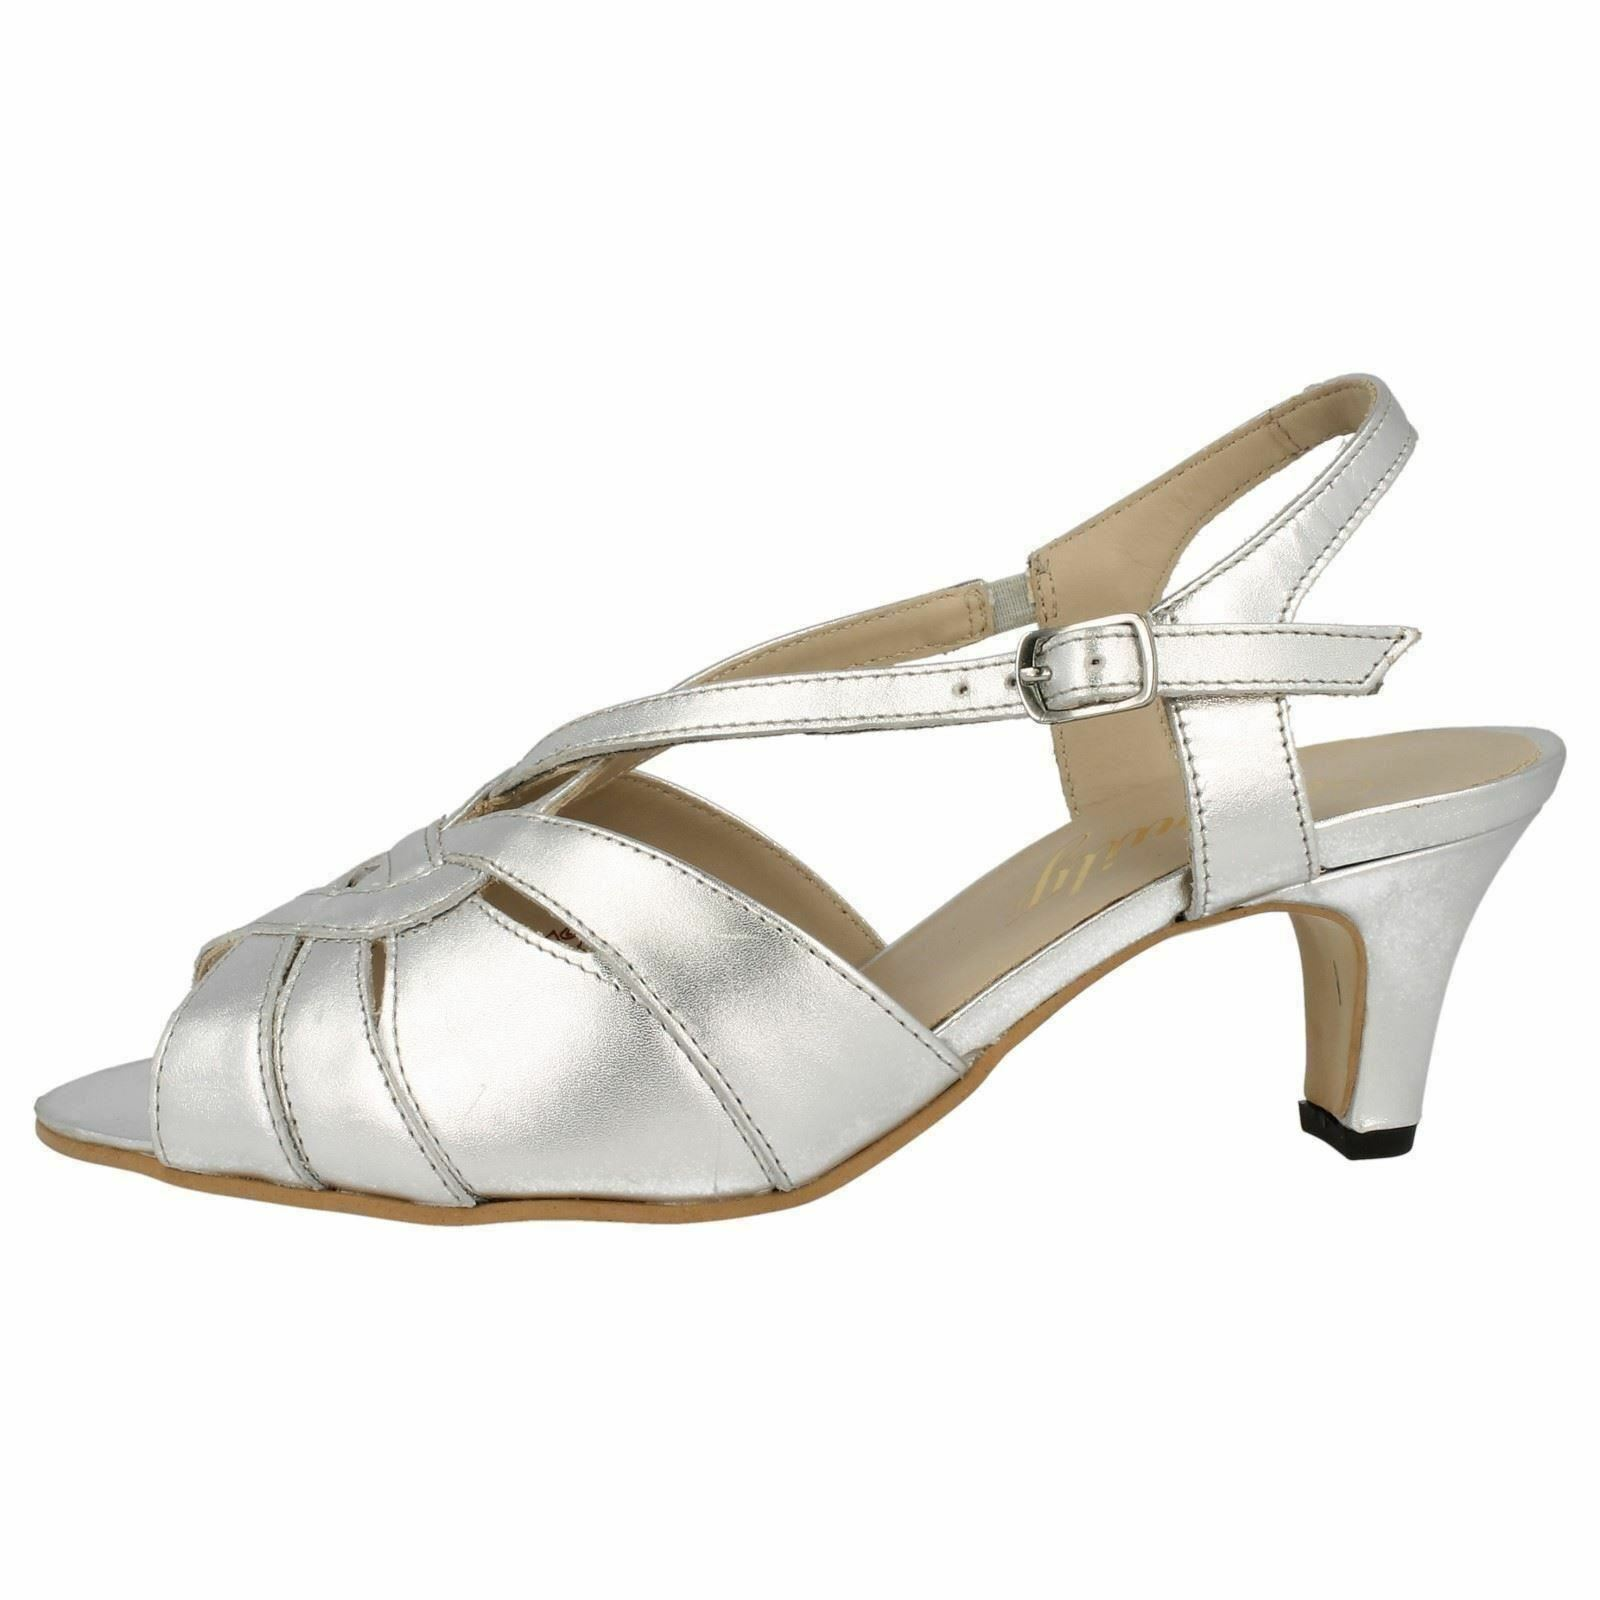 Equity Sarah Wide Fitting Evening Sandals Sandals Evening e94527